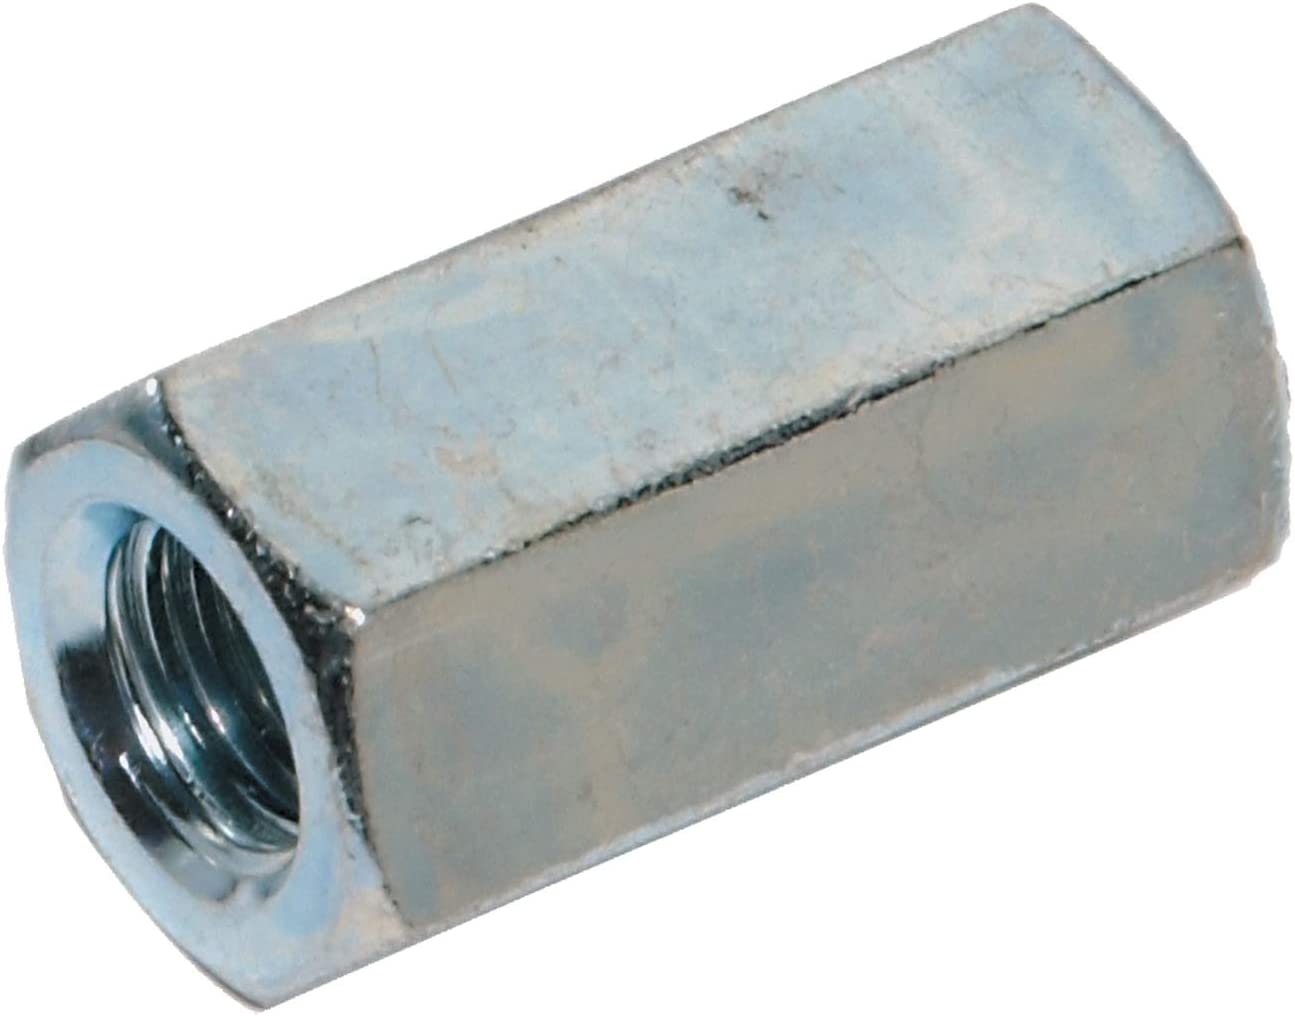 Max 64% OFF The Hillman Group 44767 M6-1.00 Coupling Hex Sale item Nut Metric 12-Pack